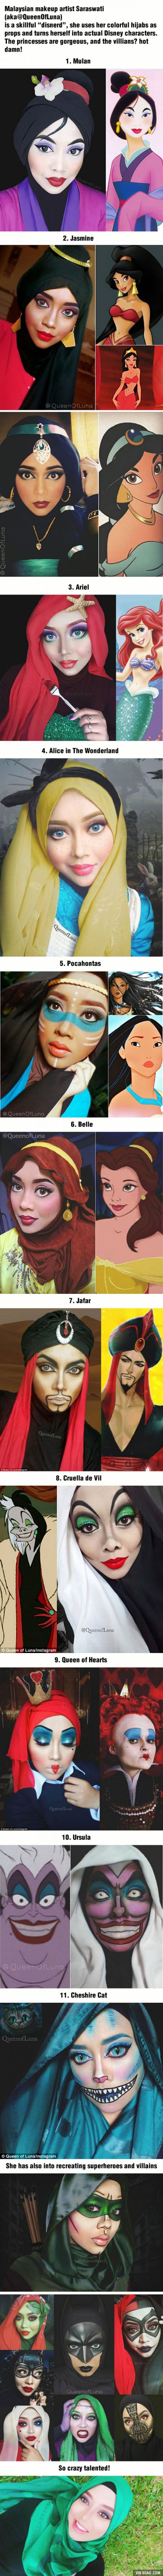 Malaysian Makeup Artist Transforms Into Stunning Disney Characters Using Her Hijab - wooooow